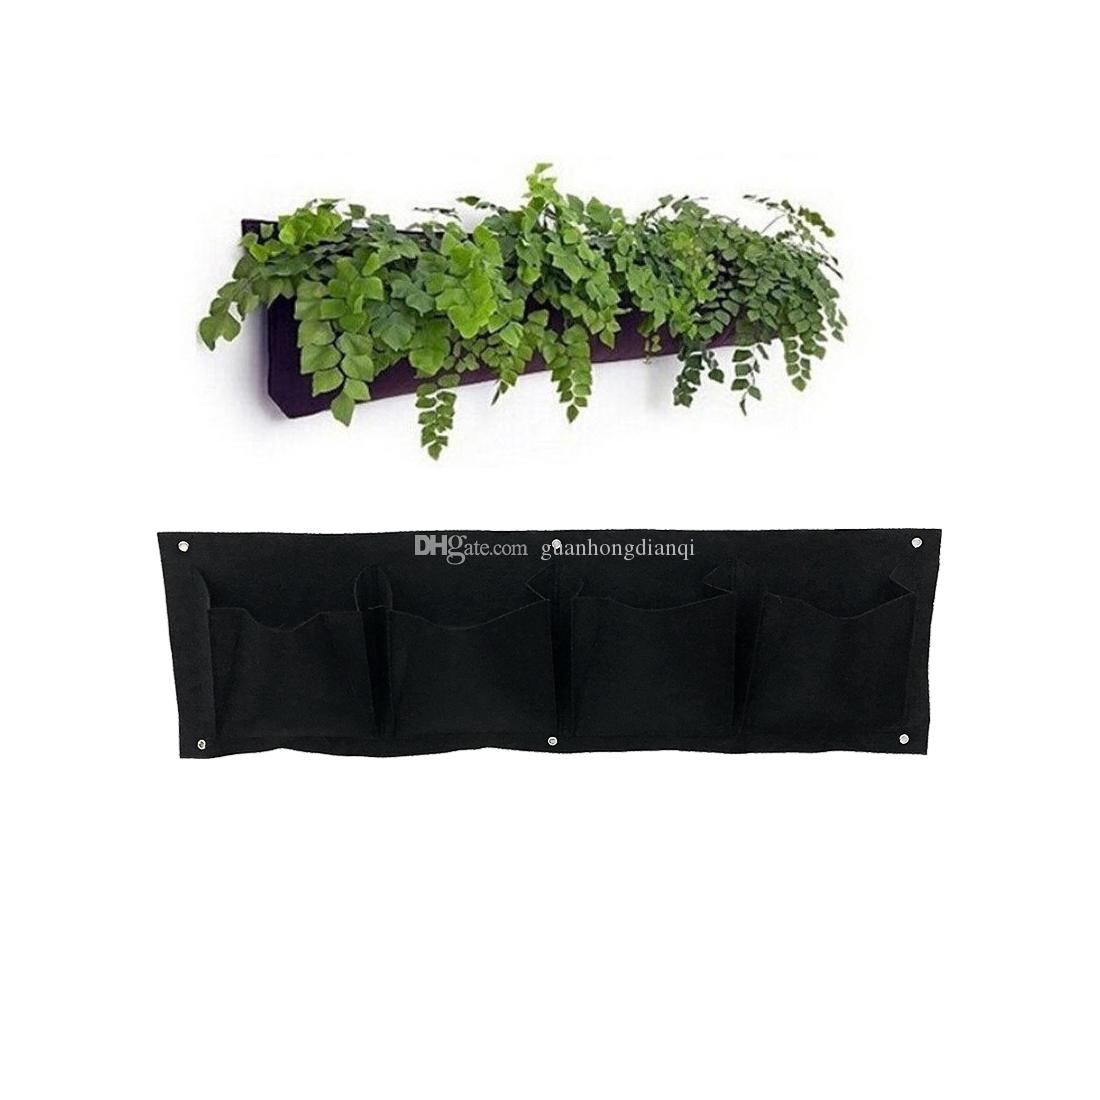 2018 4 Pockets 4 Pack Horizontal Outdoor Indoor Wall Mounted Planter Bag  Garden Living Wall Hanging Planting Grow Pots Plant Bags From  Guanhongdianqi, ...